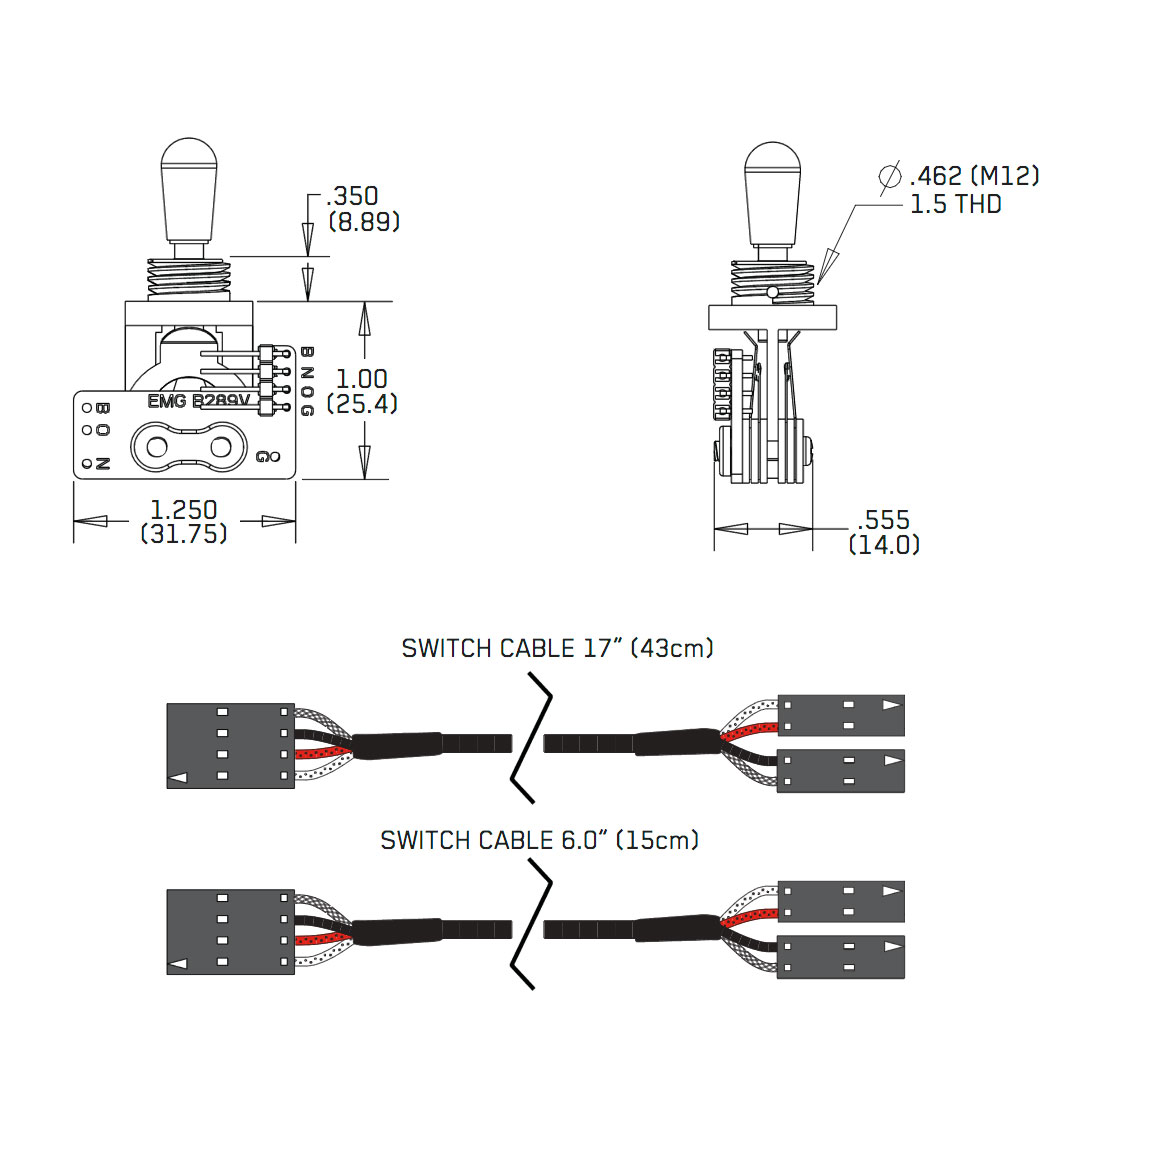 Emg H4a Wiring Diagram